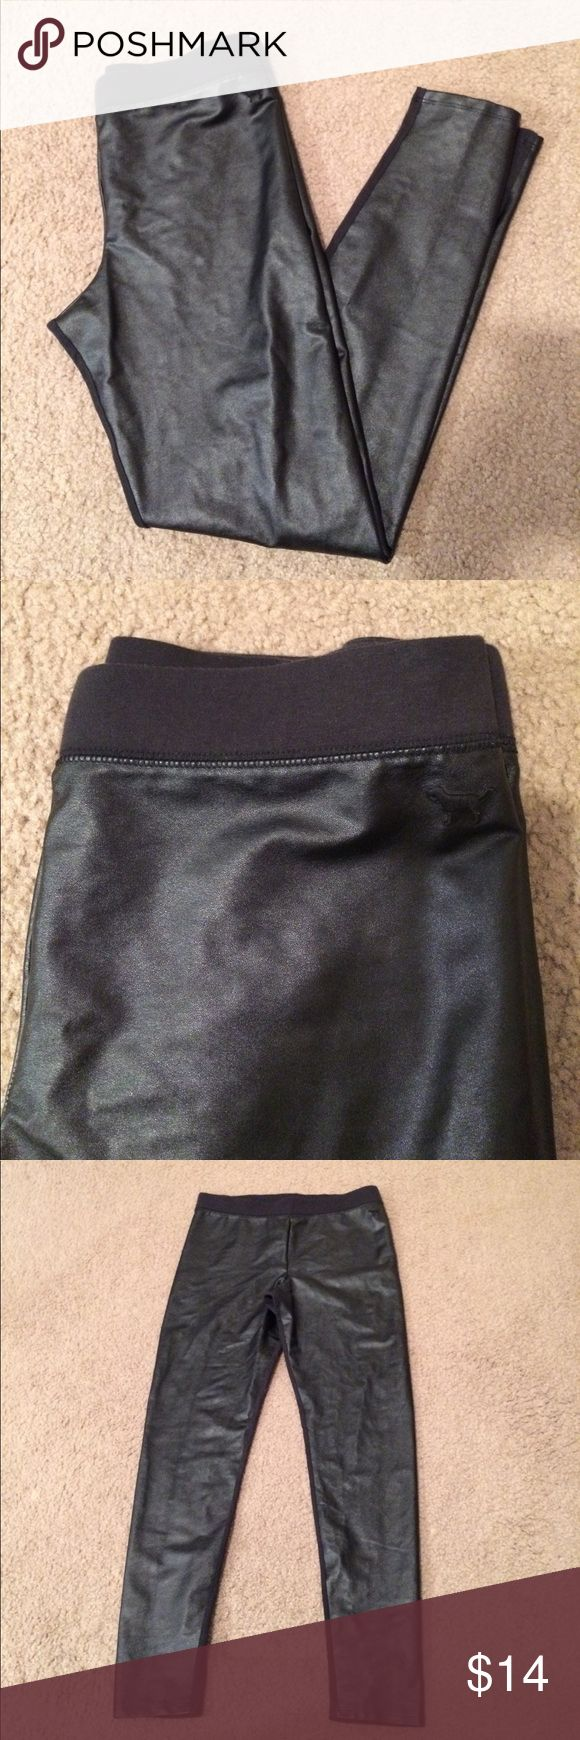 """$9 vs pink """"leather"""" panel leggings Only worn a couple times. Excellent used condition. Front of the leggings is a fake leather material. Back is regular black legging material. Very comfortable and cute.✔The price in the beginning of the title of my listings is the bundle price. These prices are valid through the """"make an offer"""" feature after you create a bundle. These bundle orders must be over $15. Ask me about more details if interested.  ❌No trades ❌No holds PINK Victoria's Secret Pants…"""